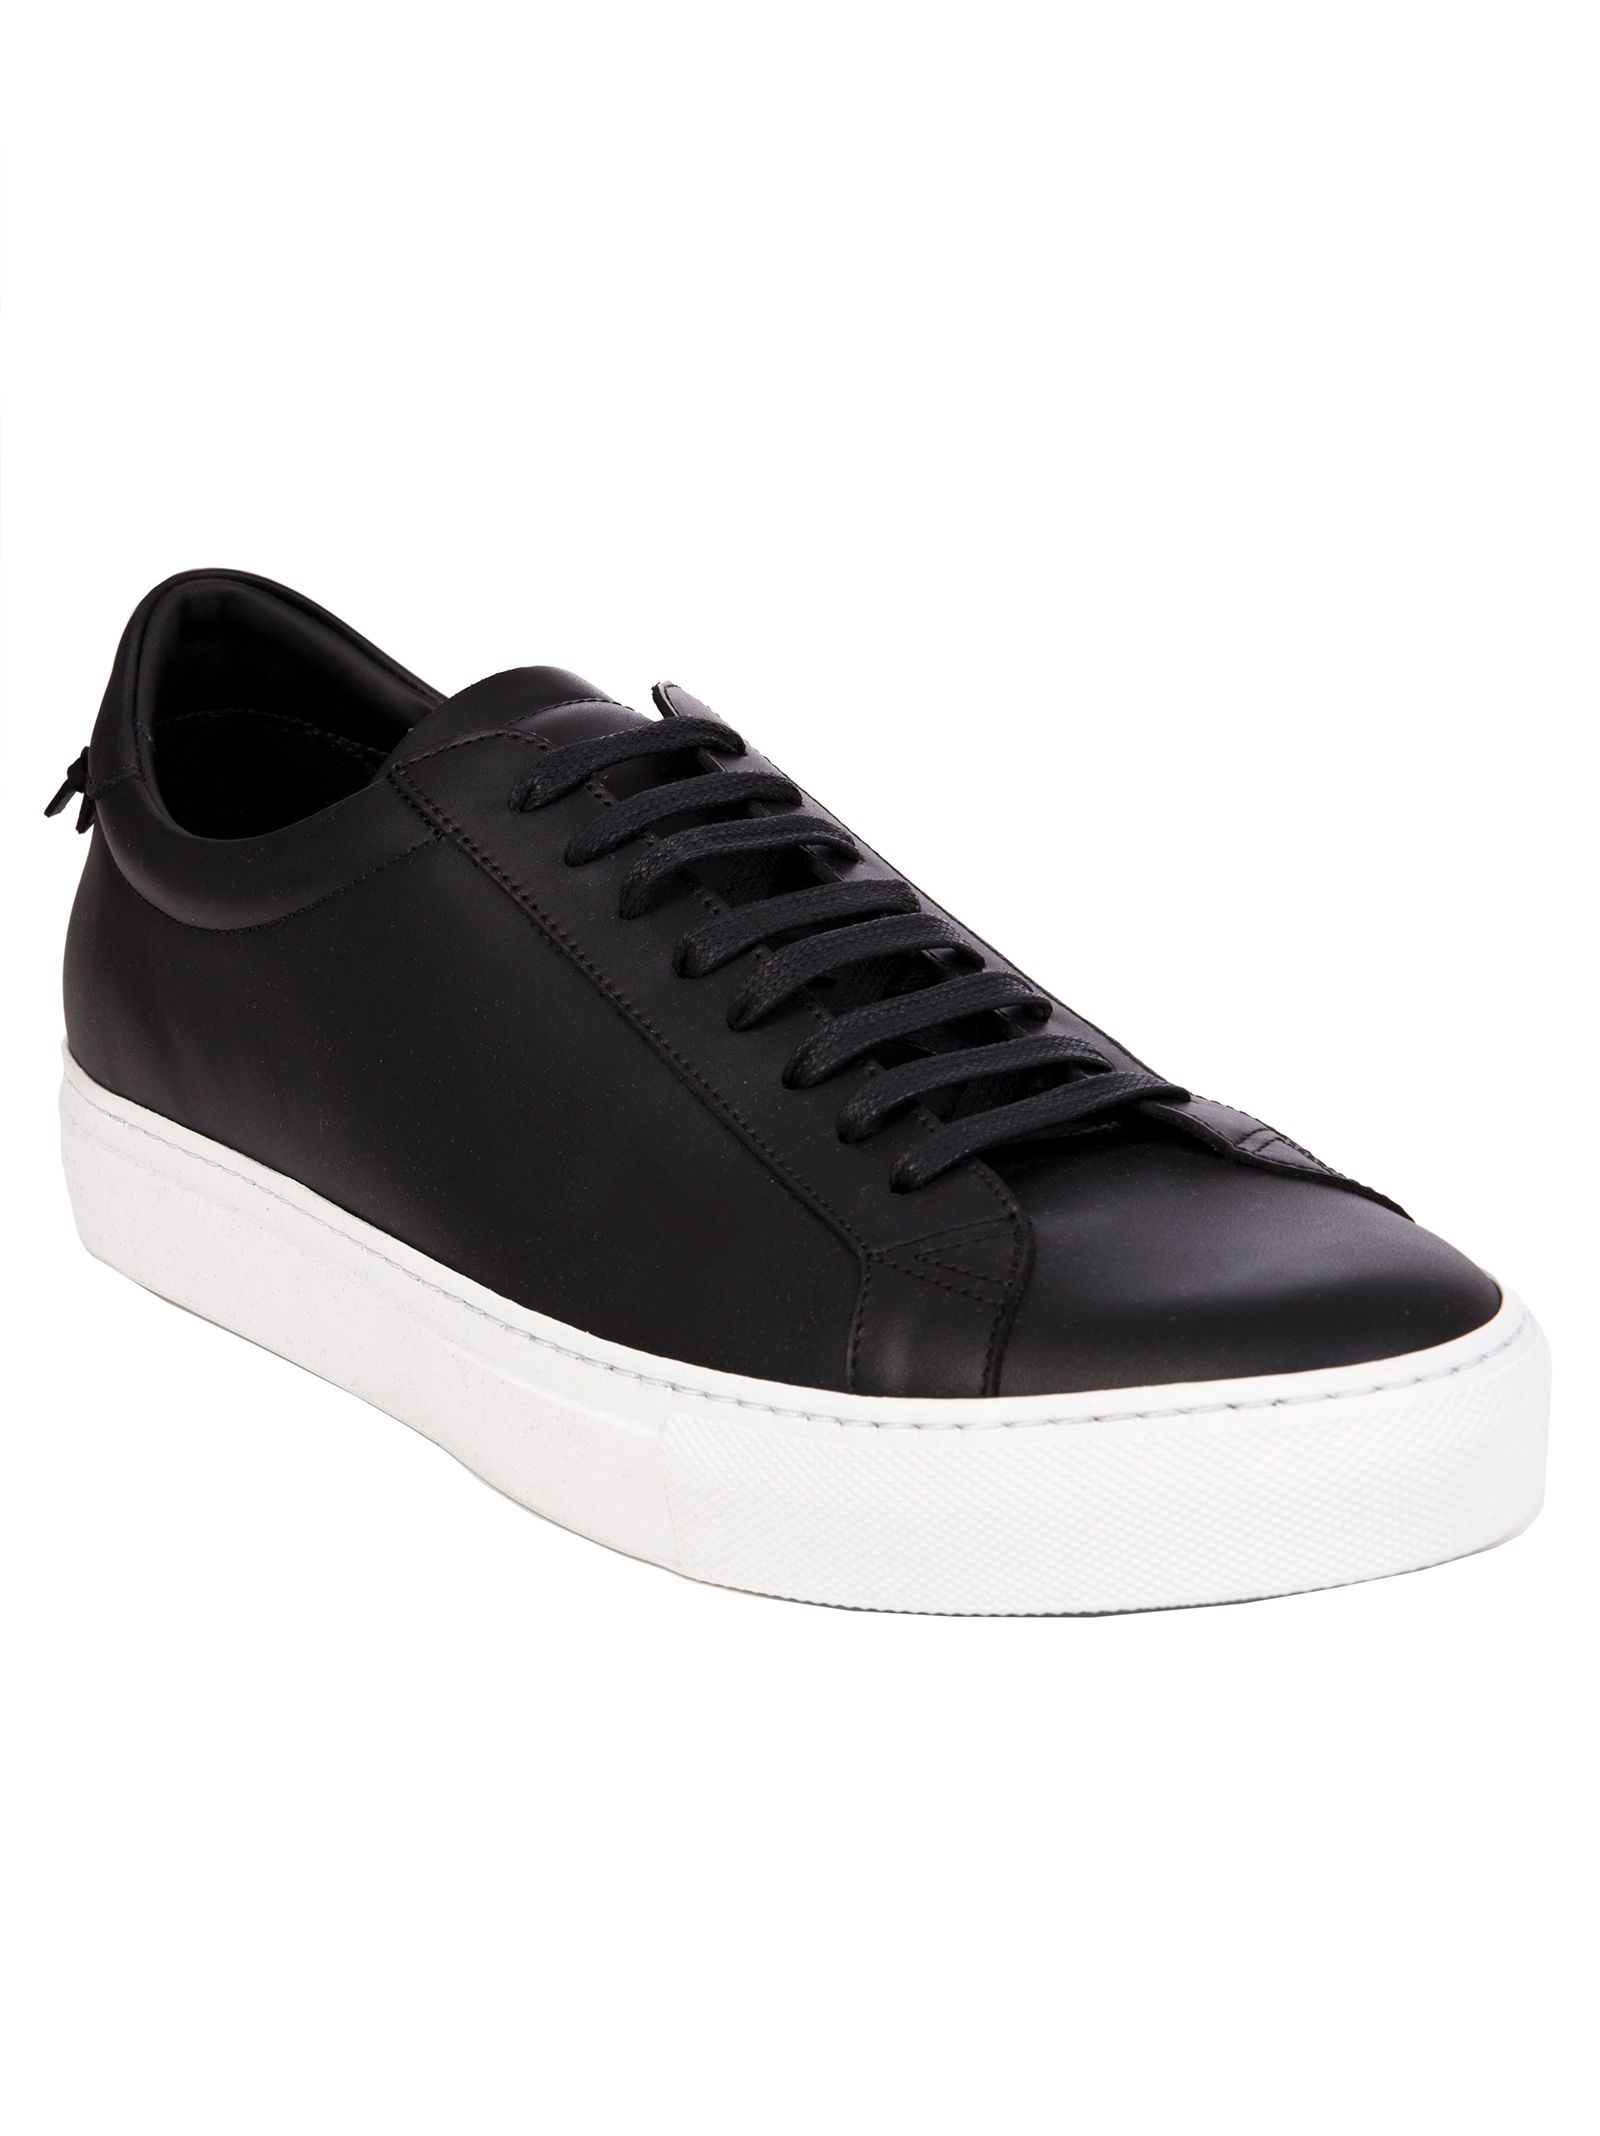 GIVENCHY PARIS URBAN STREET SNEAKERS IN BLACK